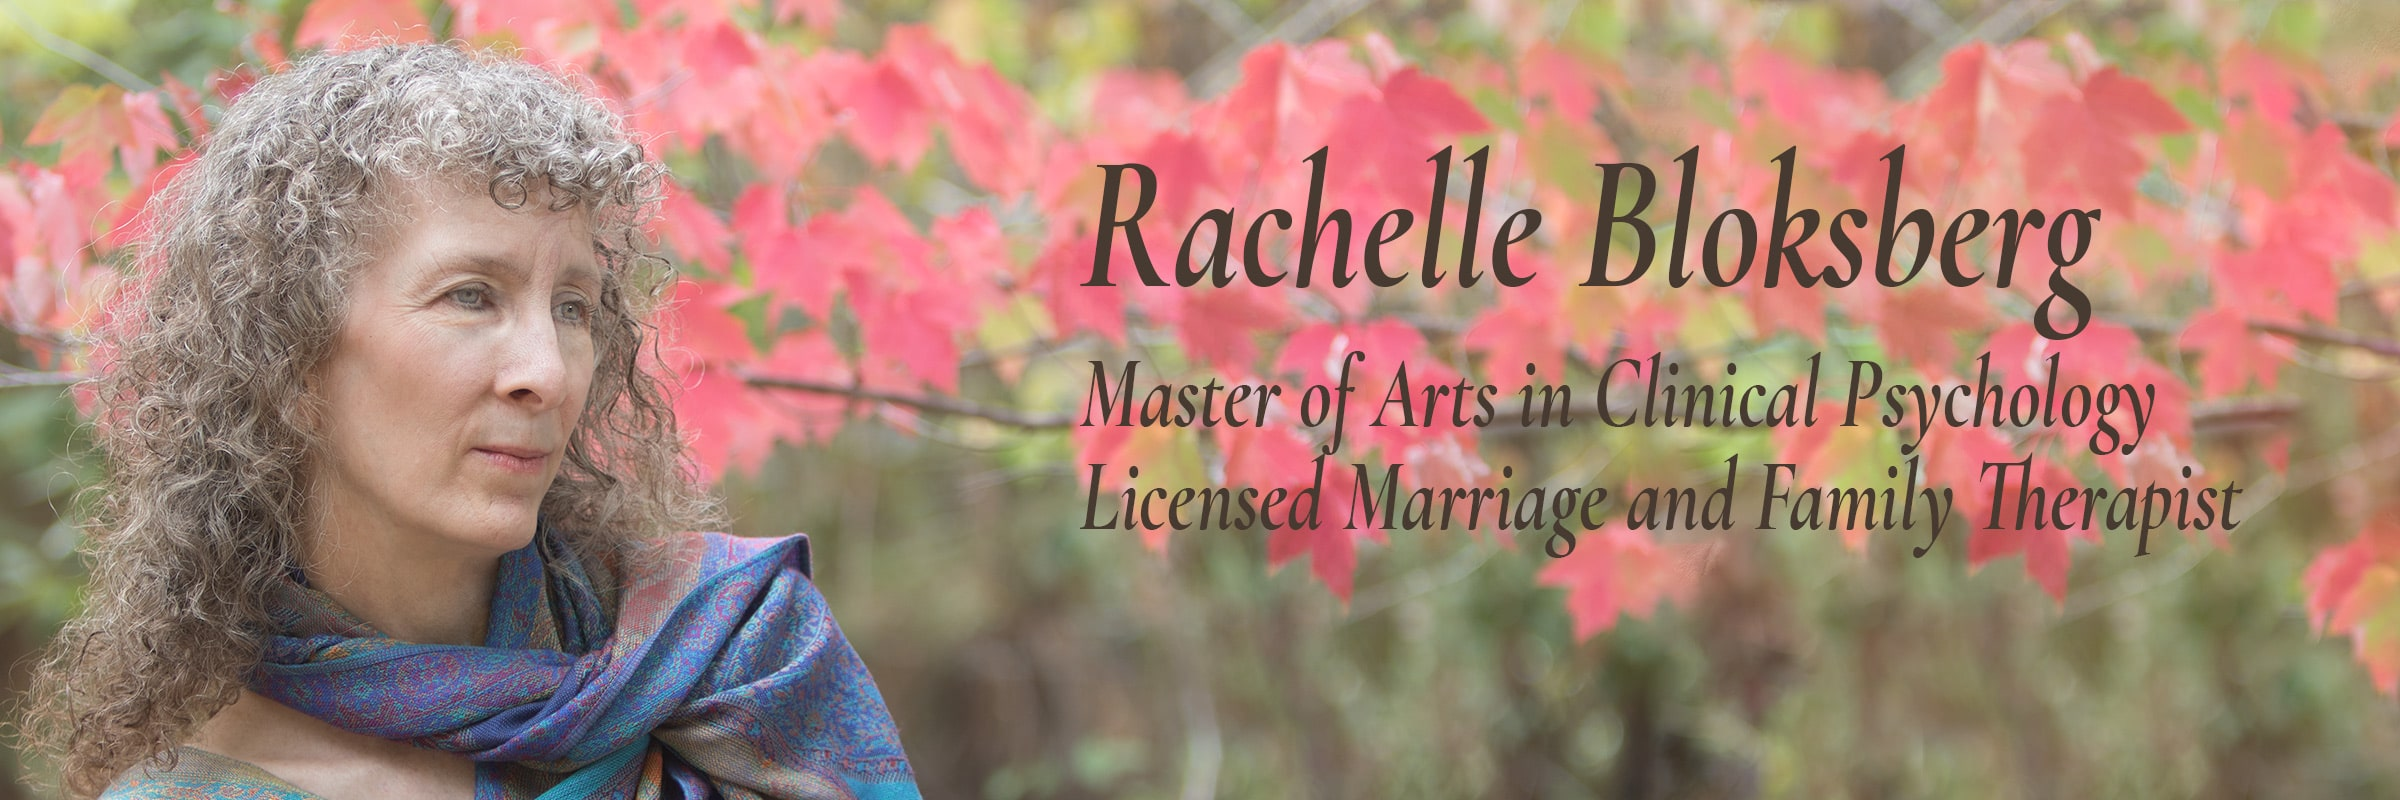 Rachelle Bloksberg, Master of Arts in Clinical Psychology, Licensed Marriage and Family Therapist